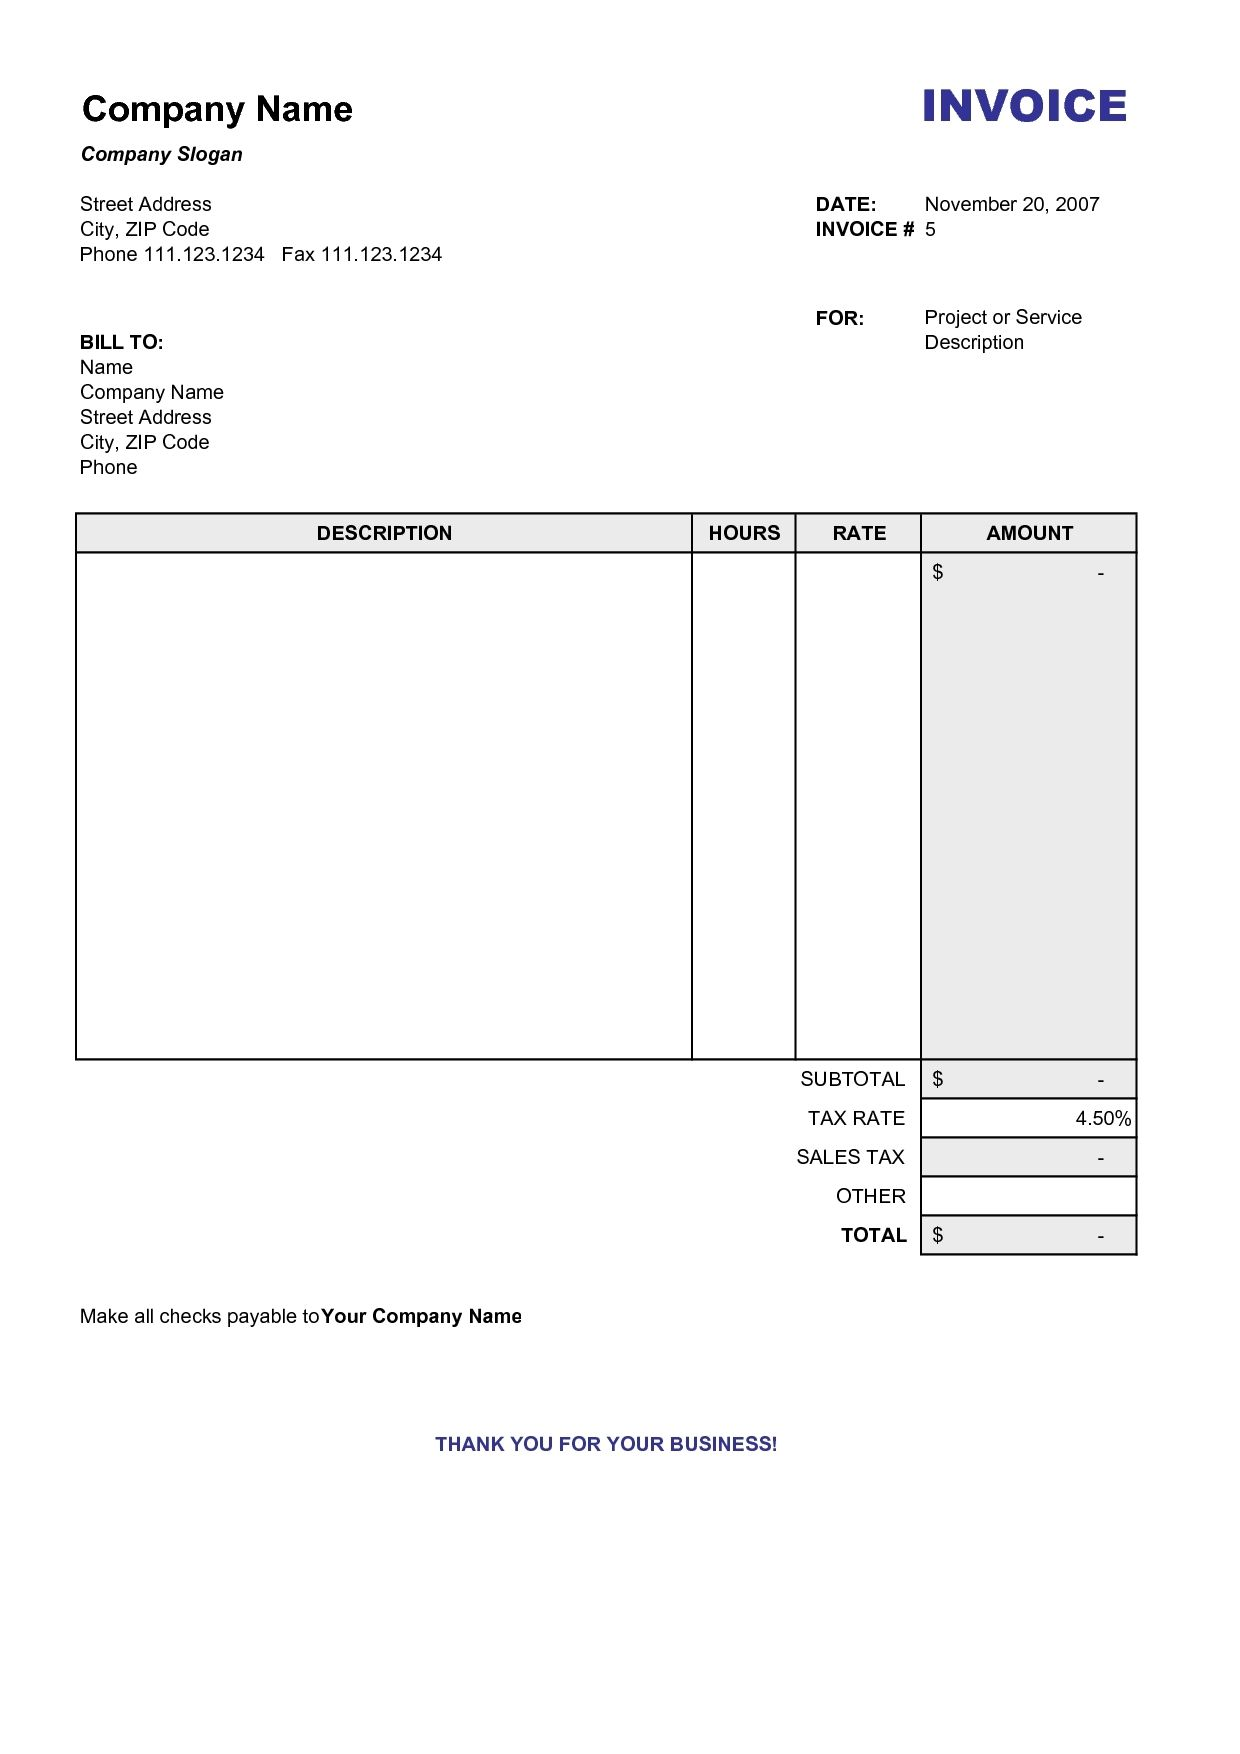 Copy Of A Blank Invoice Invoice Template Free 2016 Copy Of Blank Invoice  Plain Invoice Template